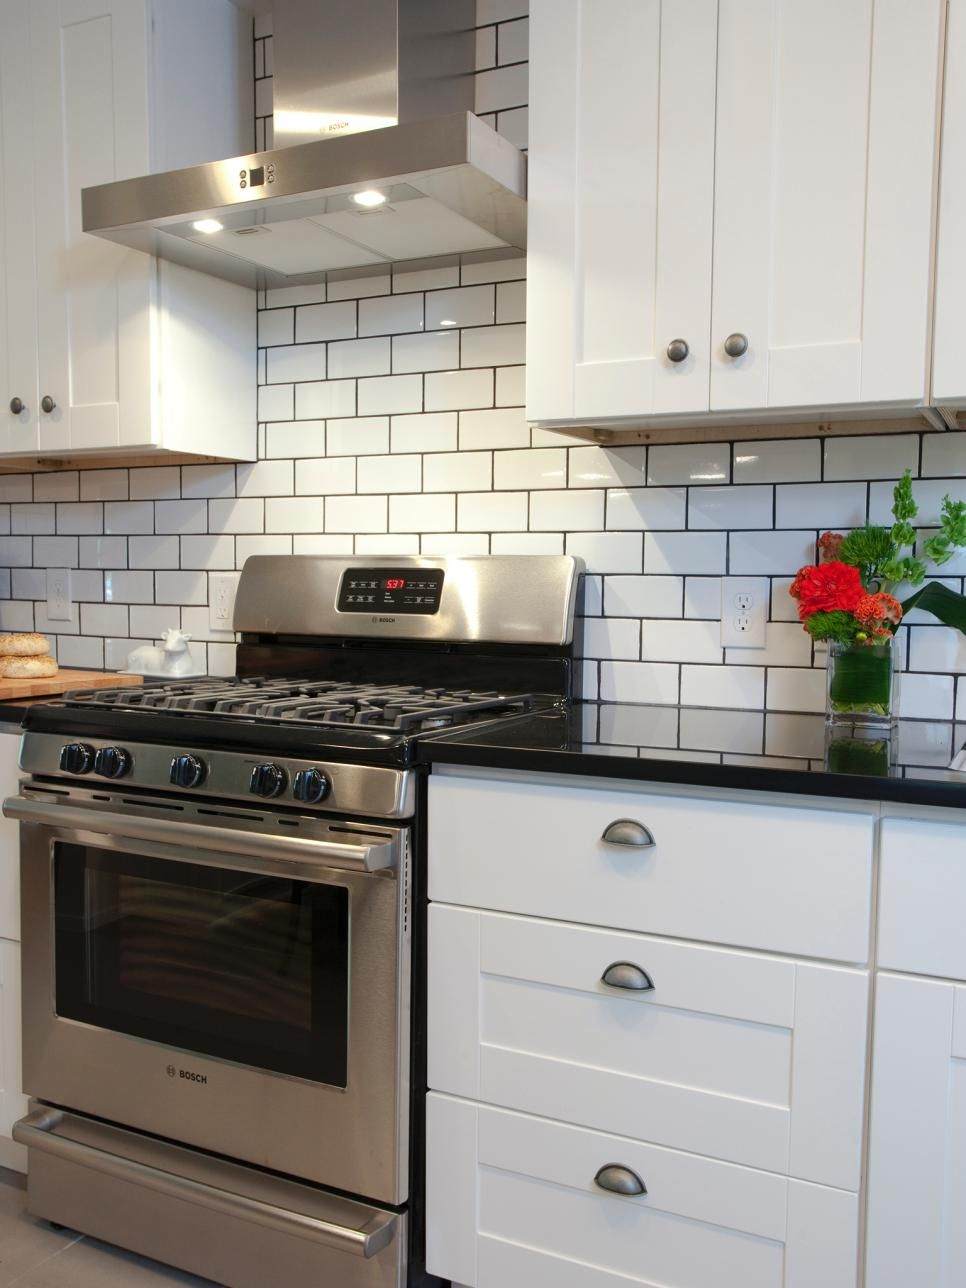 I Don't like this dark a grout between tiles. As seen on ...